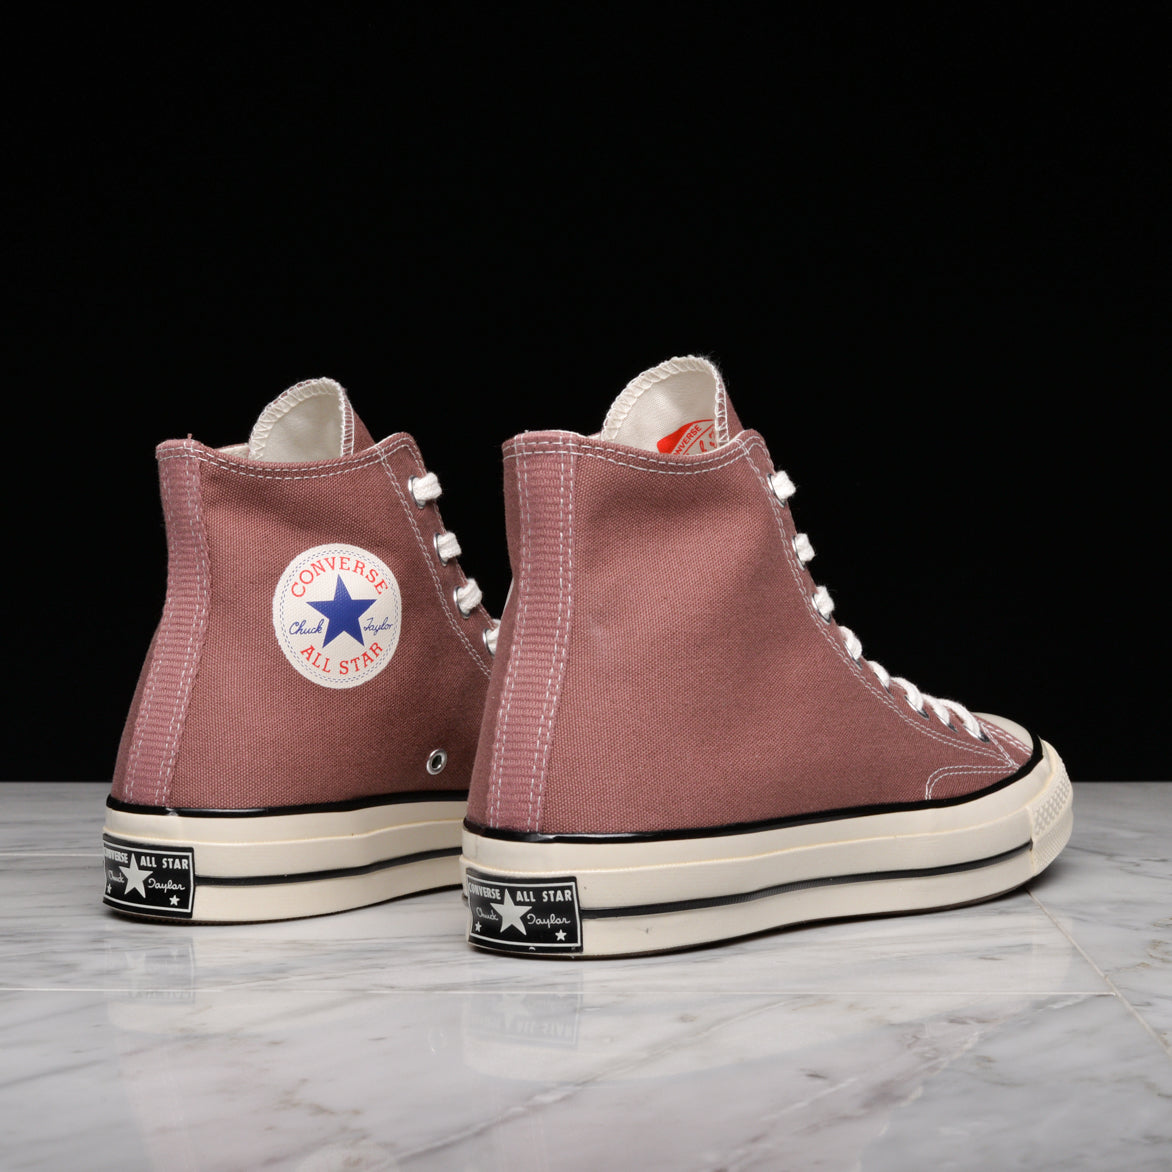 CHUCK TAYLOR ALL STAR 70 HIGH - SADDLE